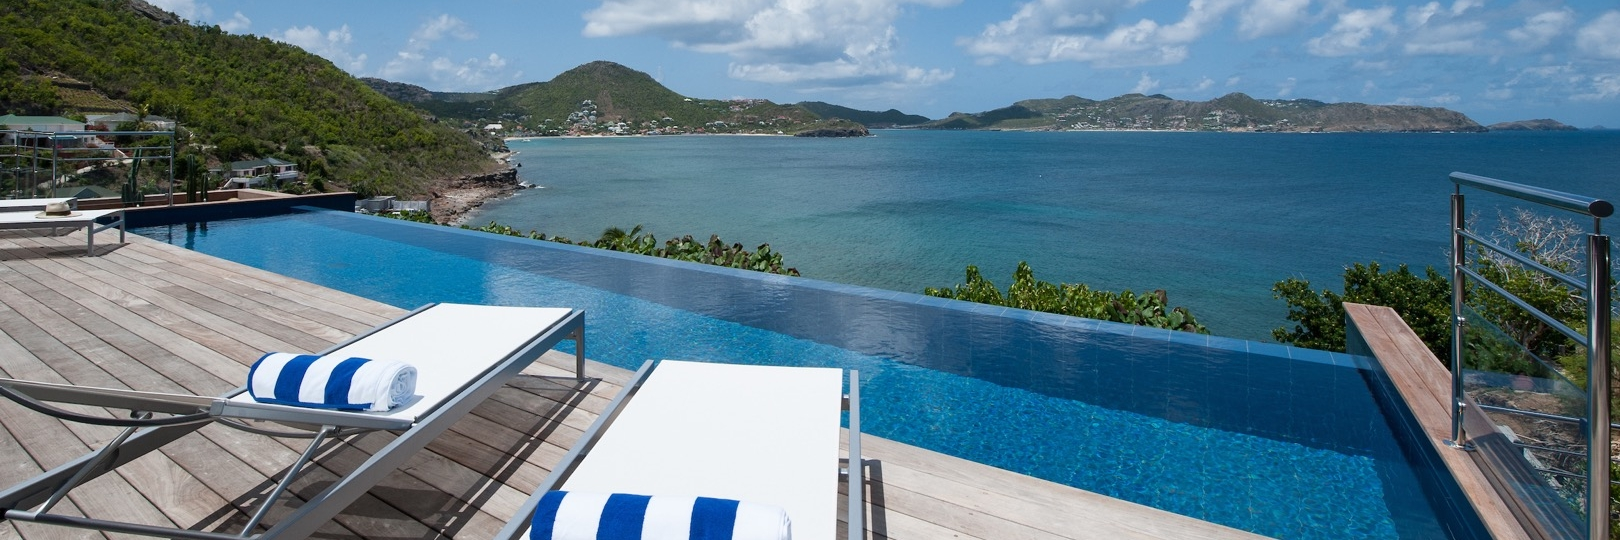 Saint Barth Villa - Pointe Milou